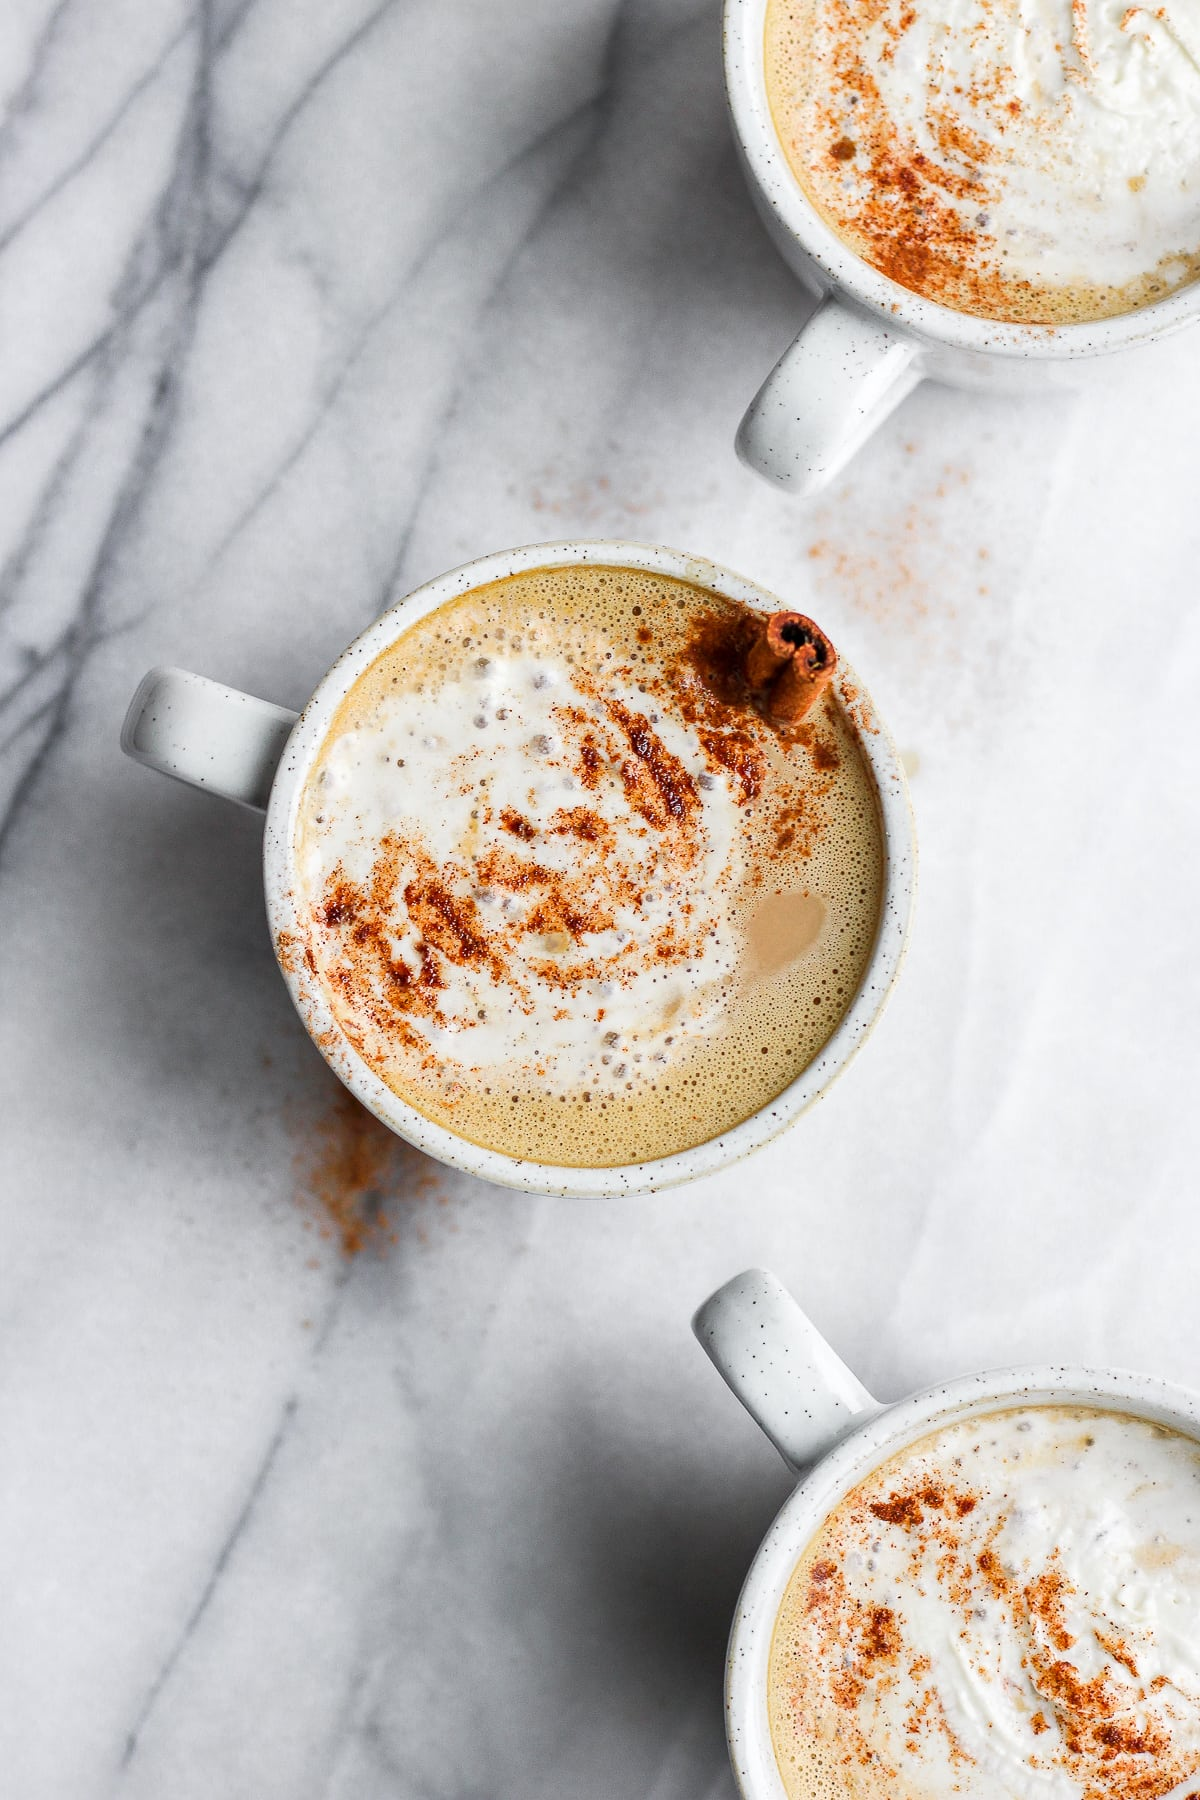 Dairy-Free Pumpkin Spice Latte - a healthier version of your classic pumpkin spice latte! #paleo #dairyfree #pumpkinspice #coffee